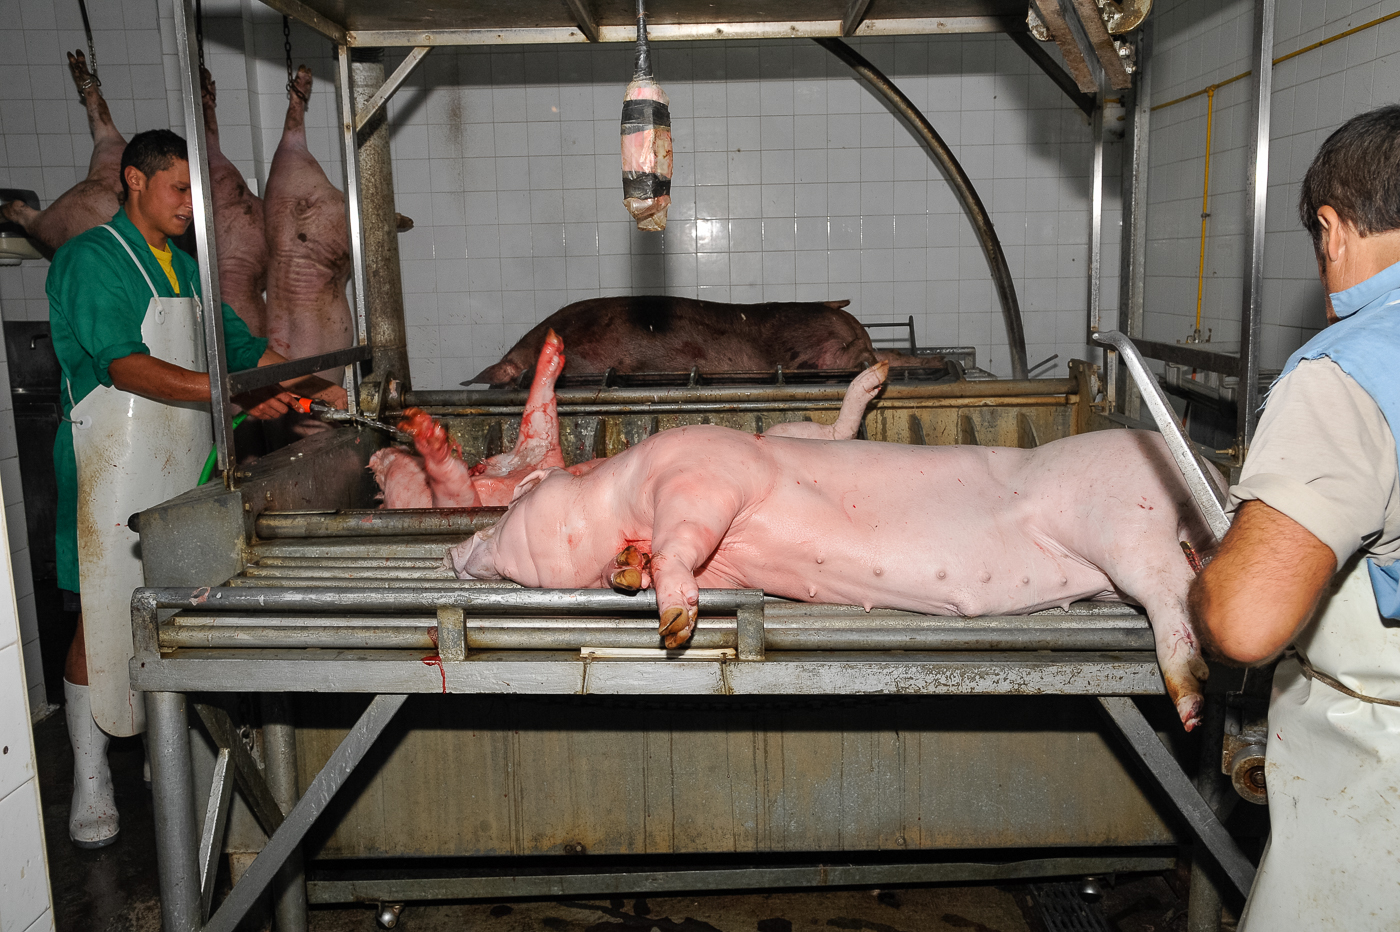 A grim torture chamber for pigs, hopefully dead